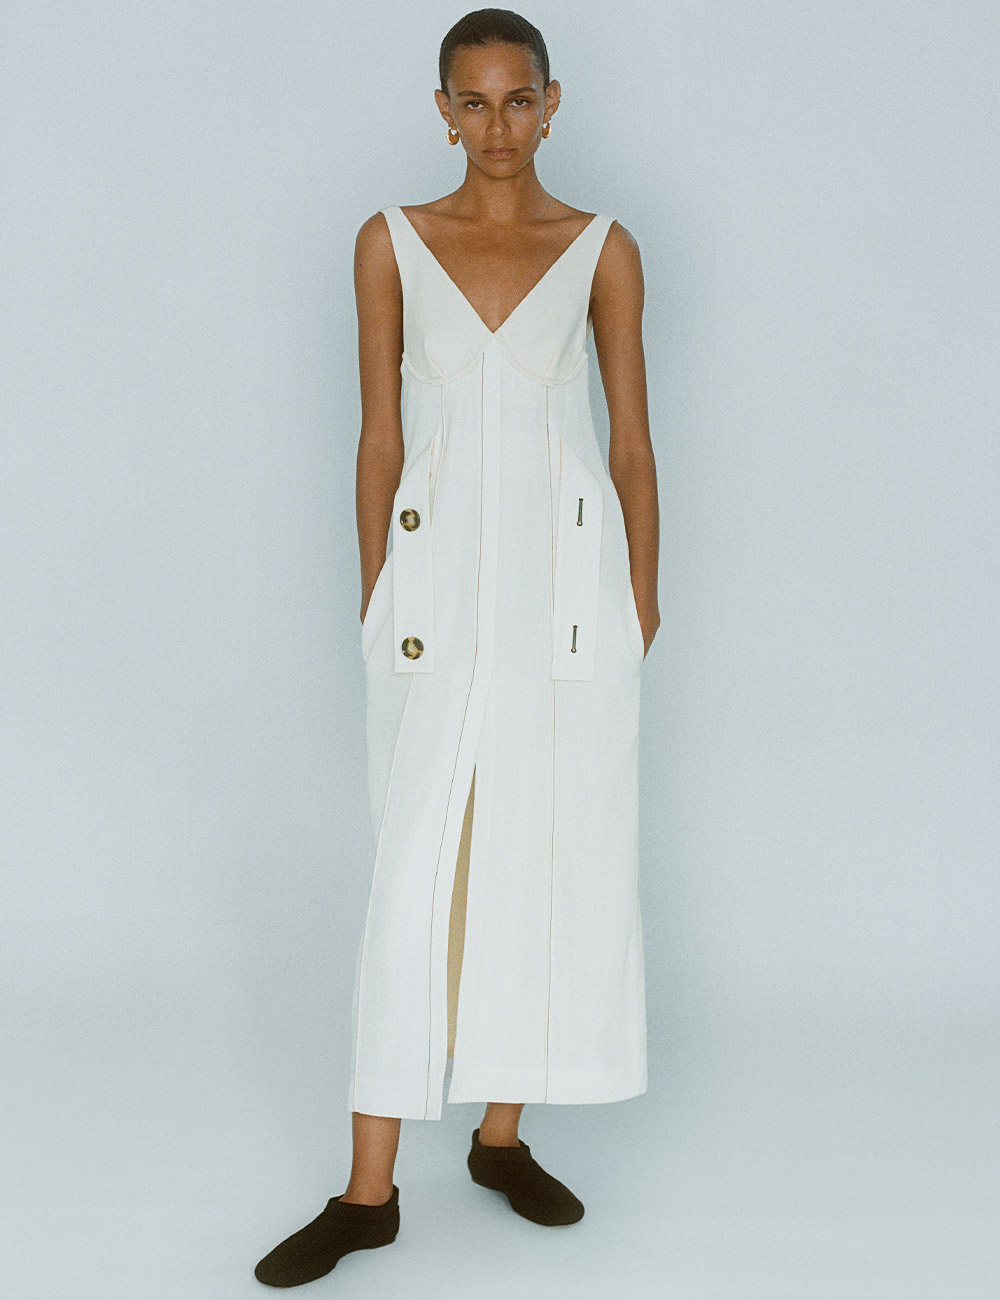 SS21 Look 3: White Dress